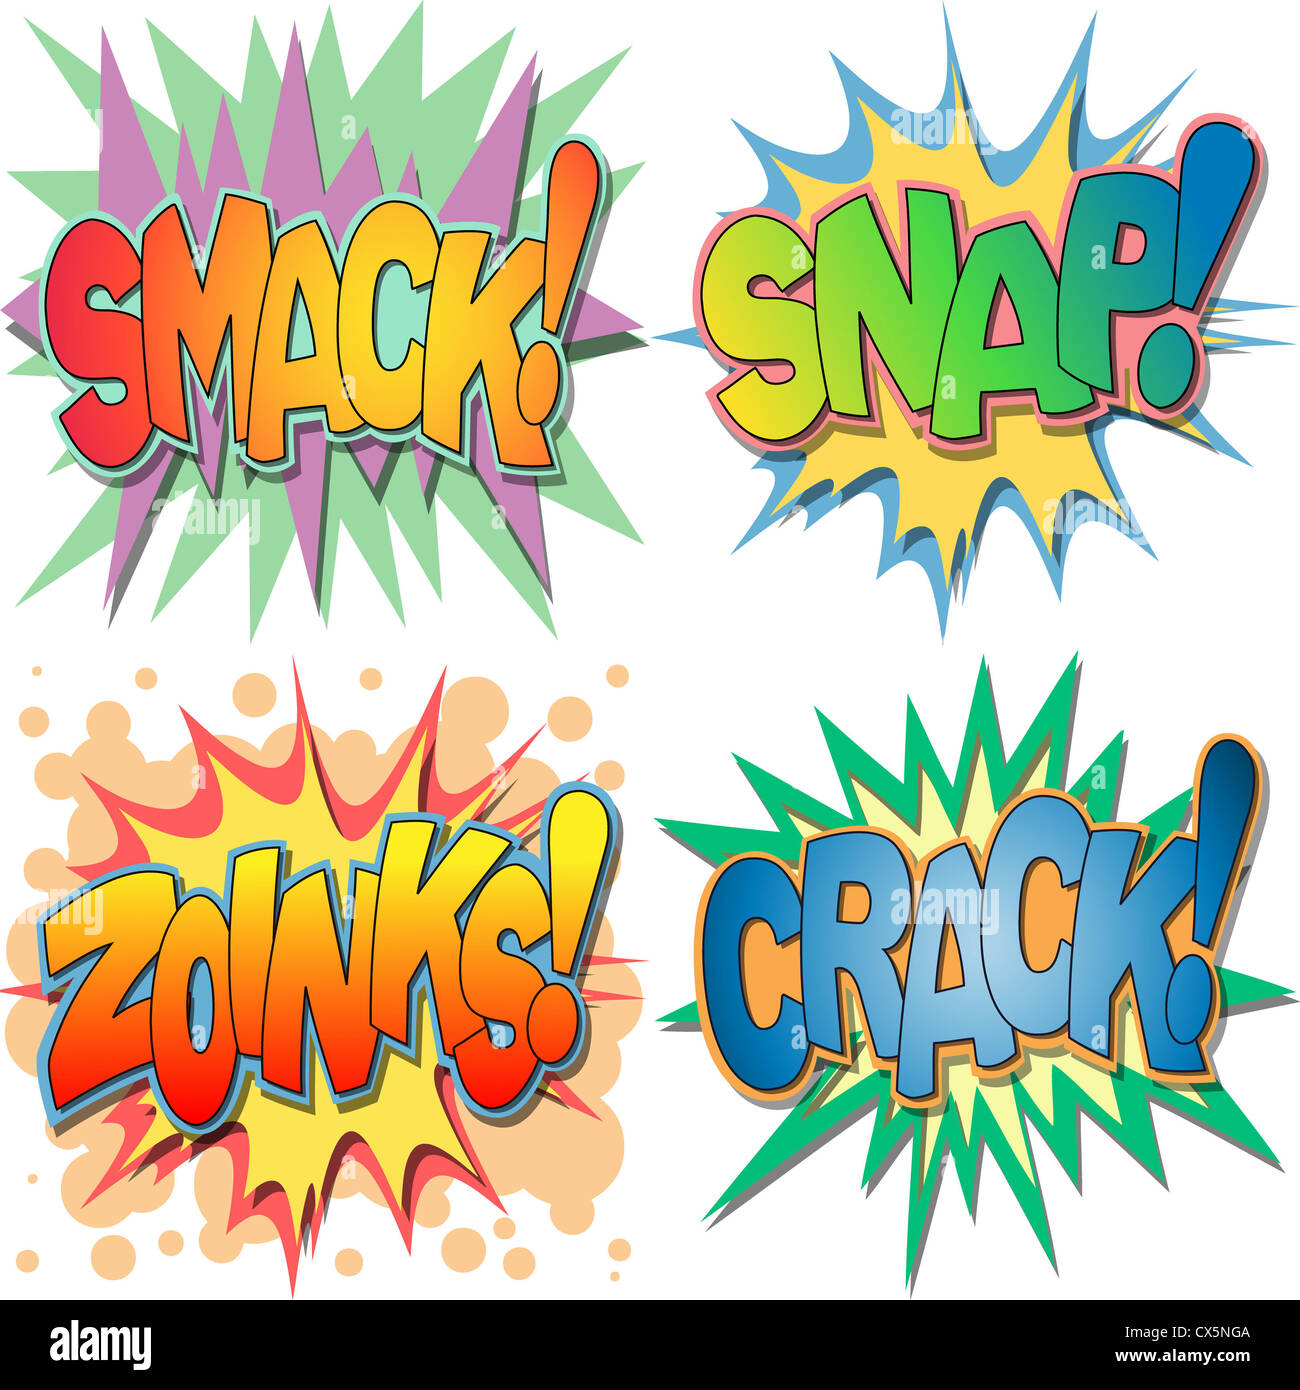 A Selection of Comic Book Exclamations and Action Words, Smack, Snap, Zoinks, Crack. - Stock Image